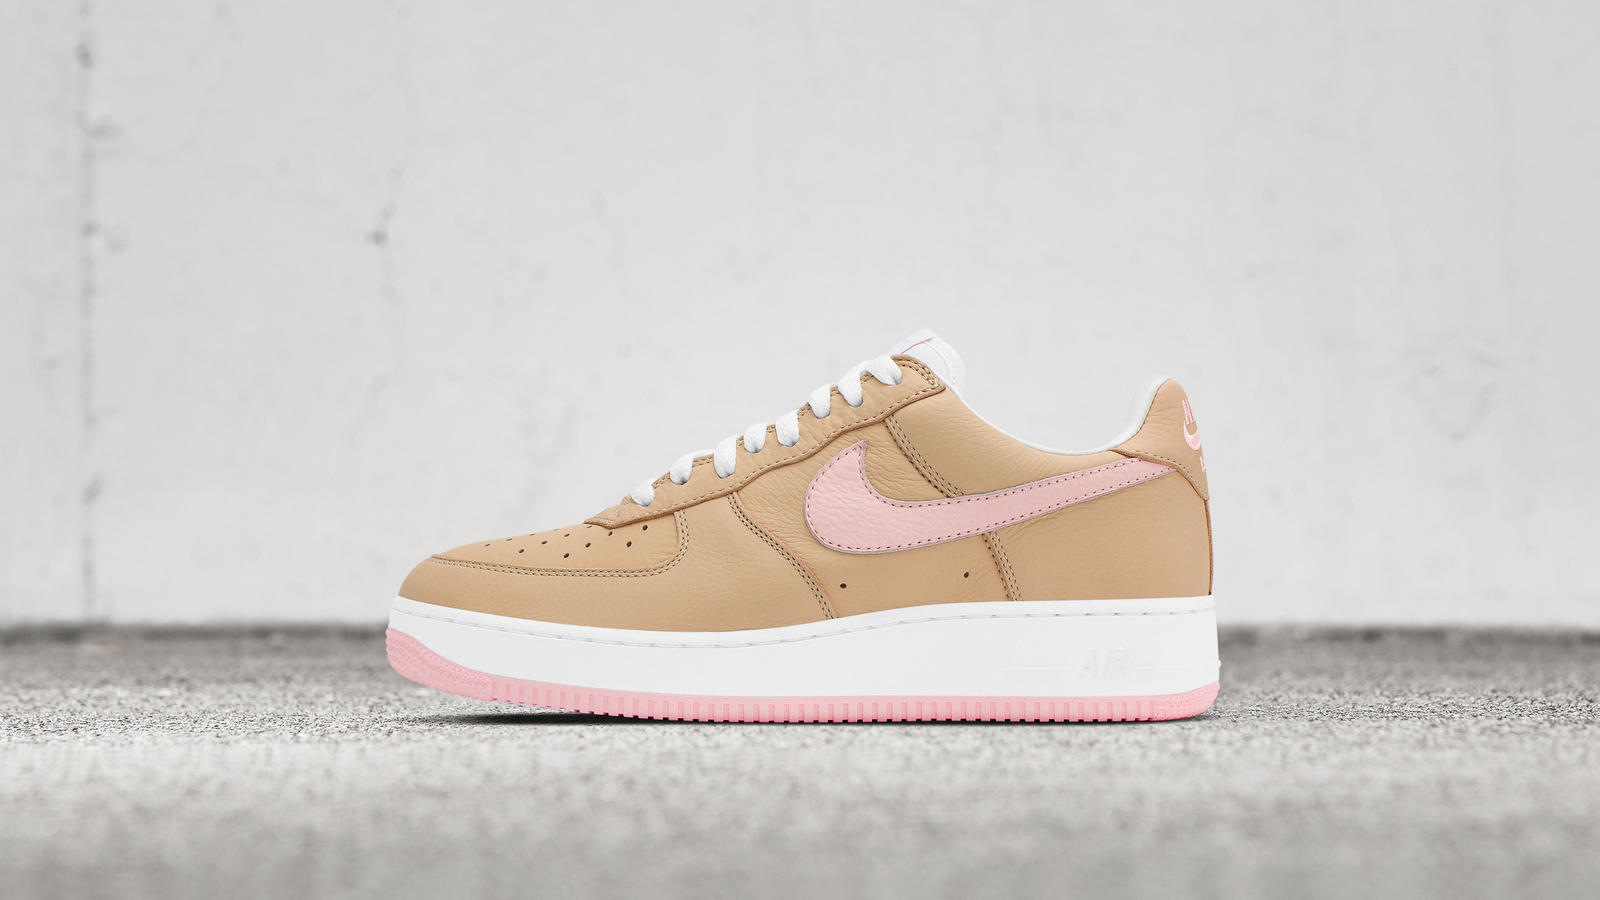 063562fc9be Nike Air Force 1